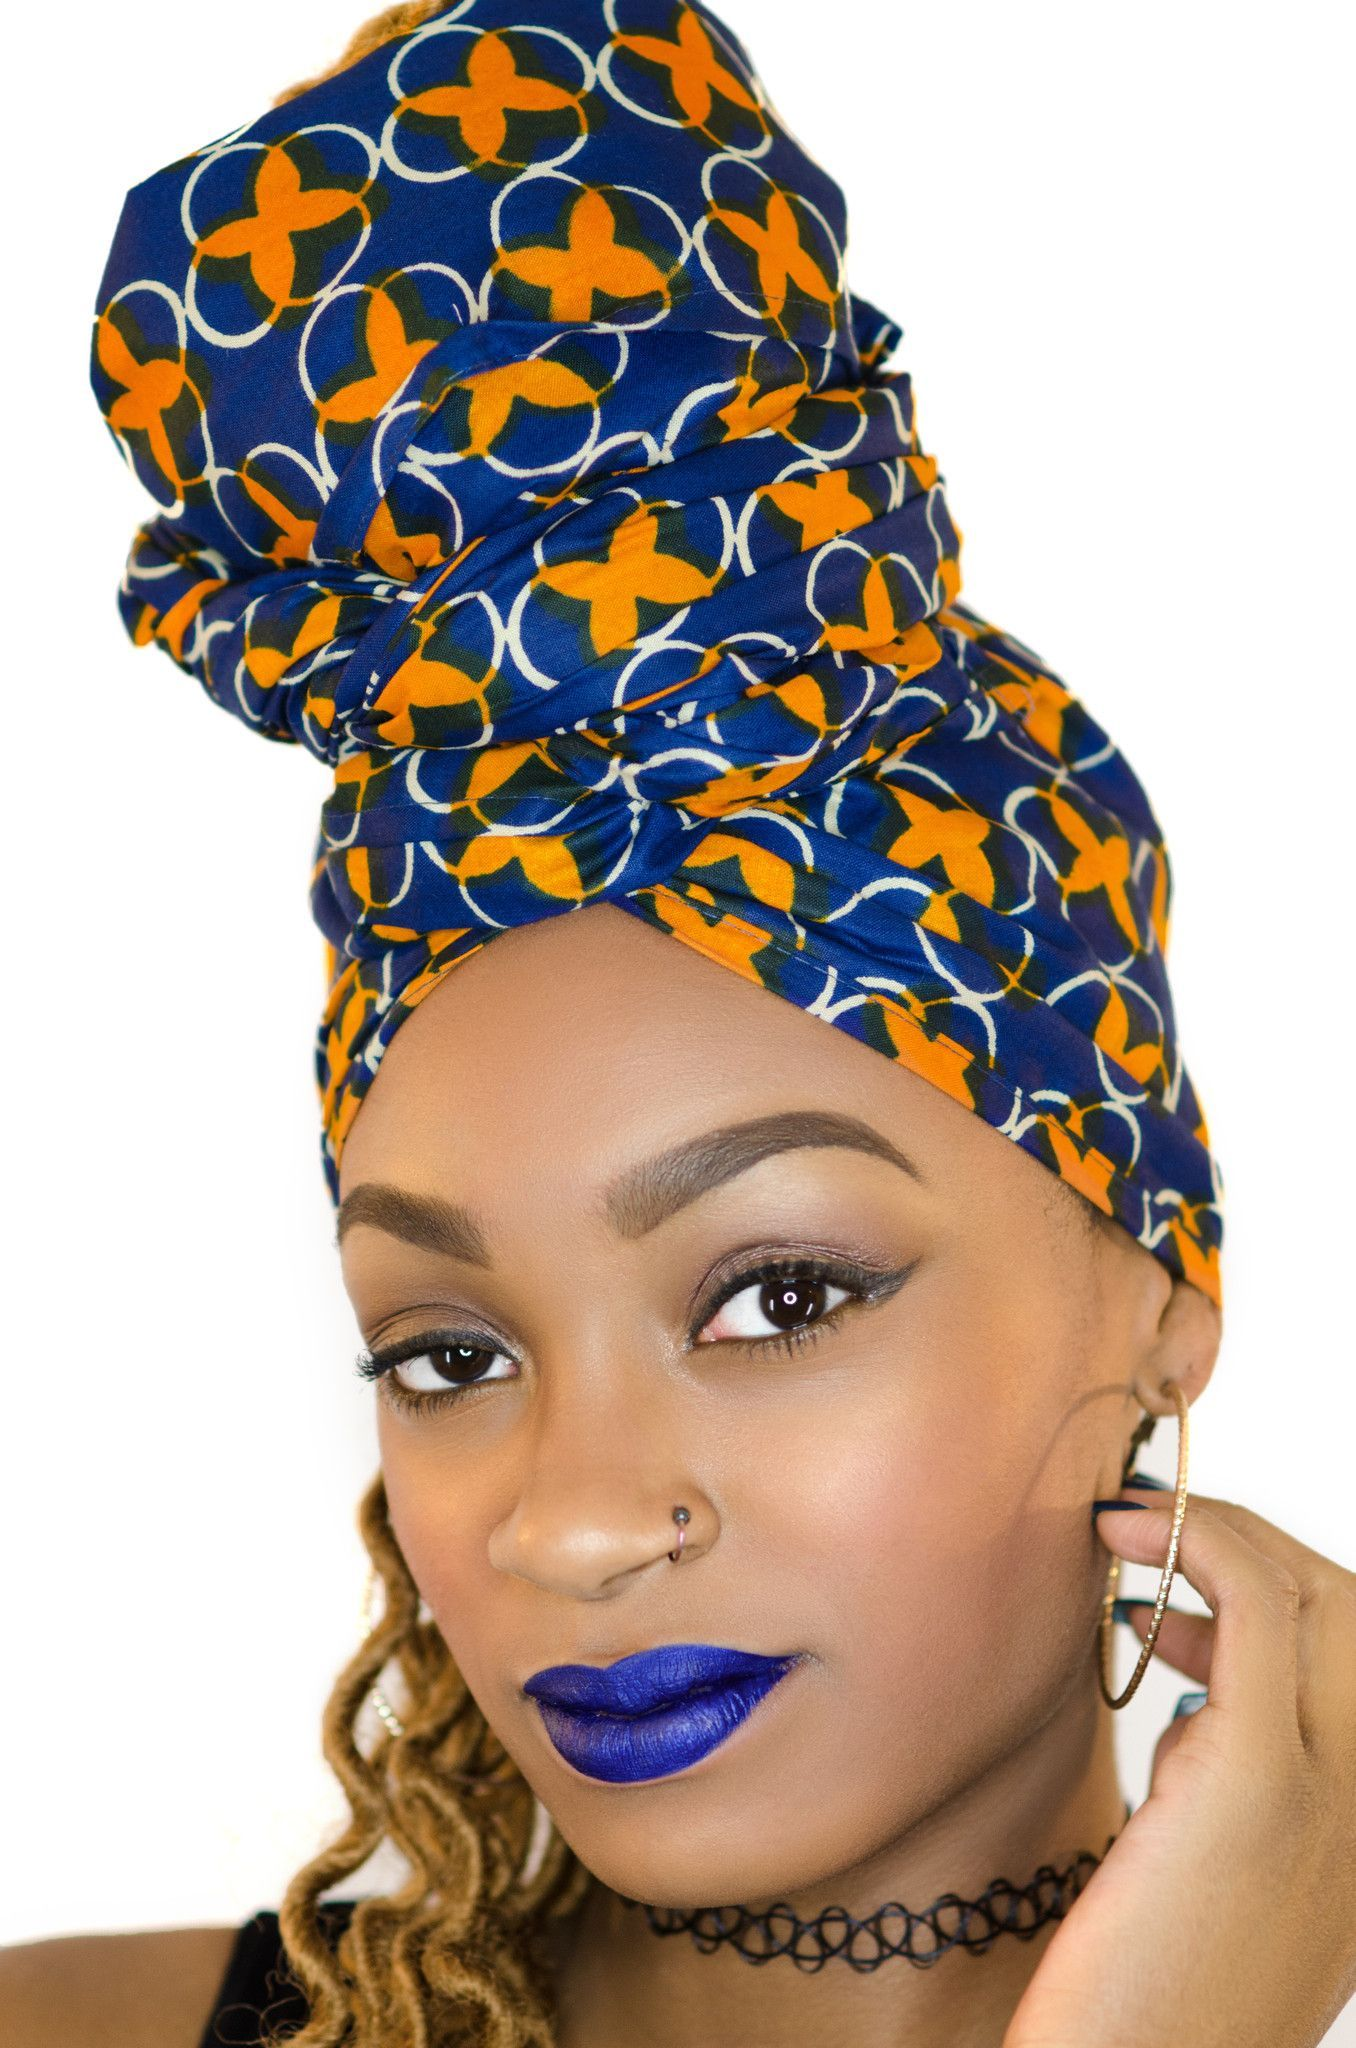 Coiffure Afro Bandeau Blue Goddess Head Wrap Foulard Africain Coiffures Afro